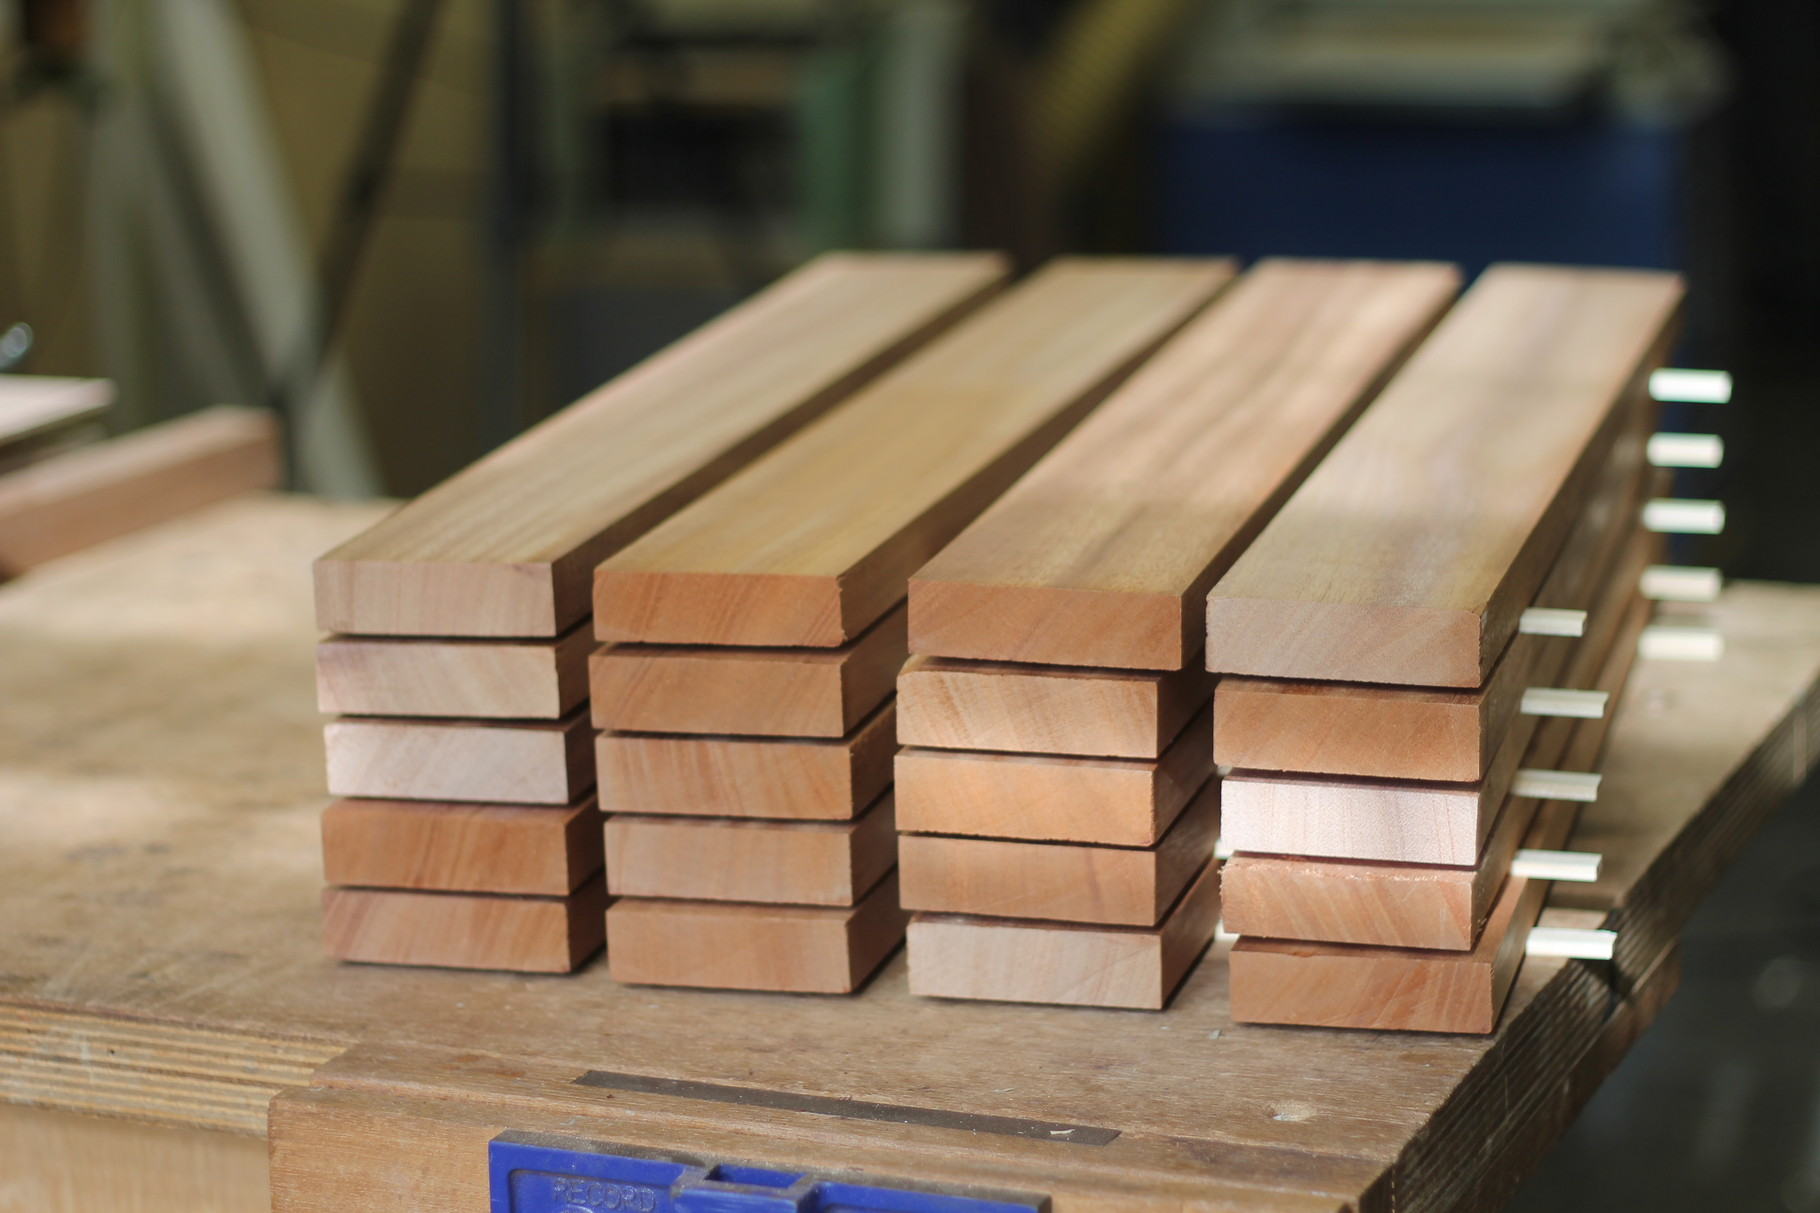 Mahogany neck blanks